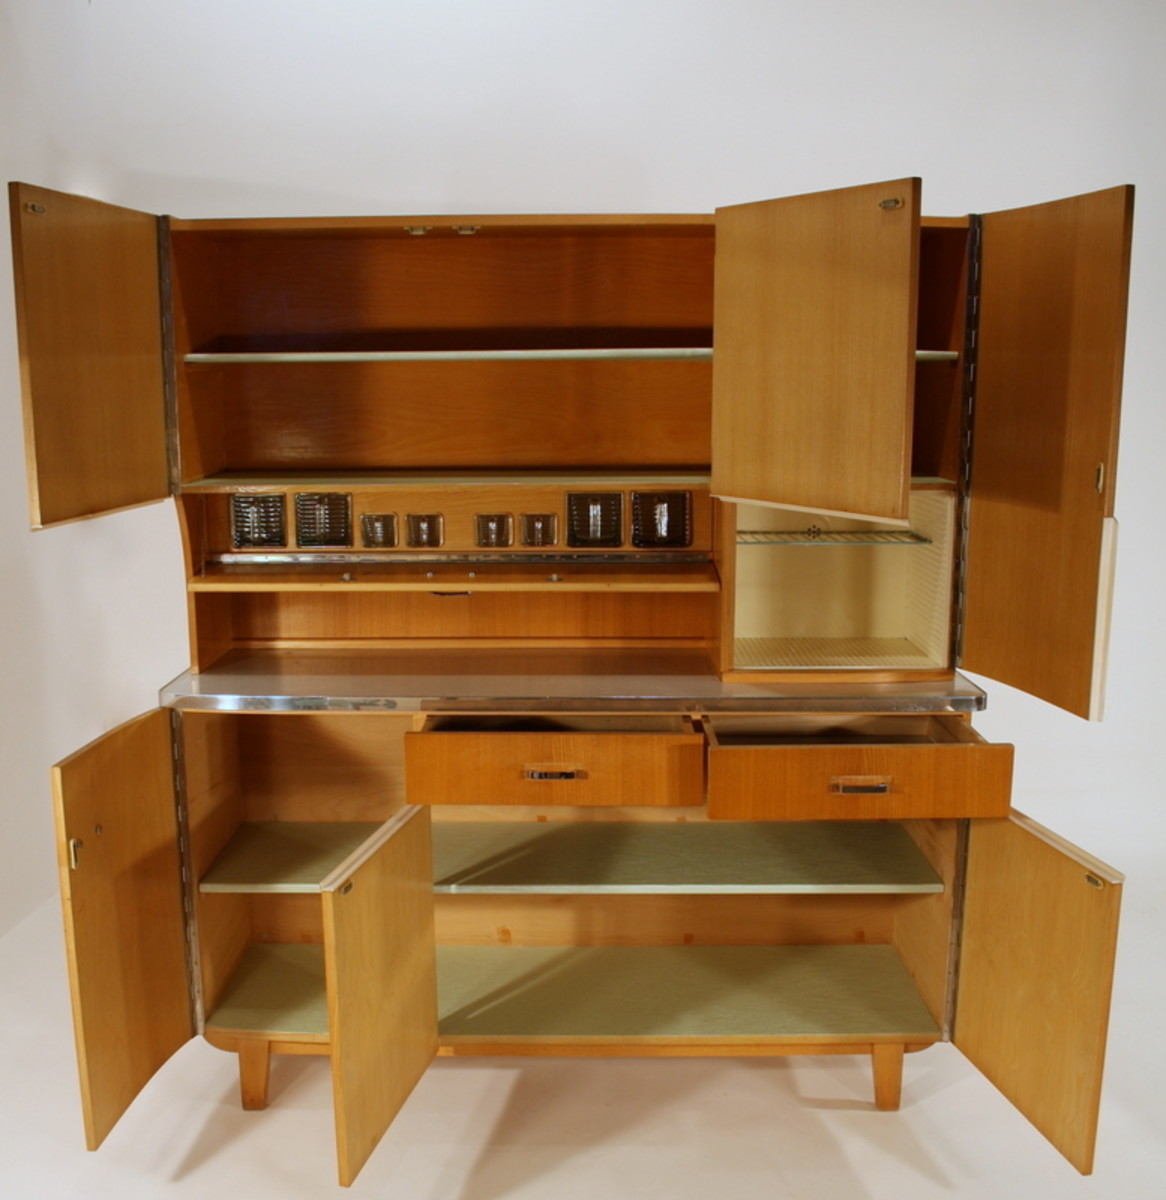 Vintage 1950s wood cabinetry on ebay for $1450.